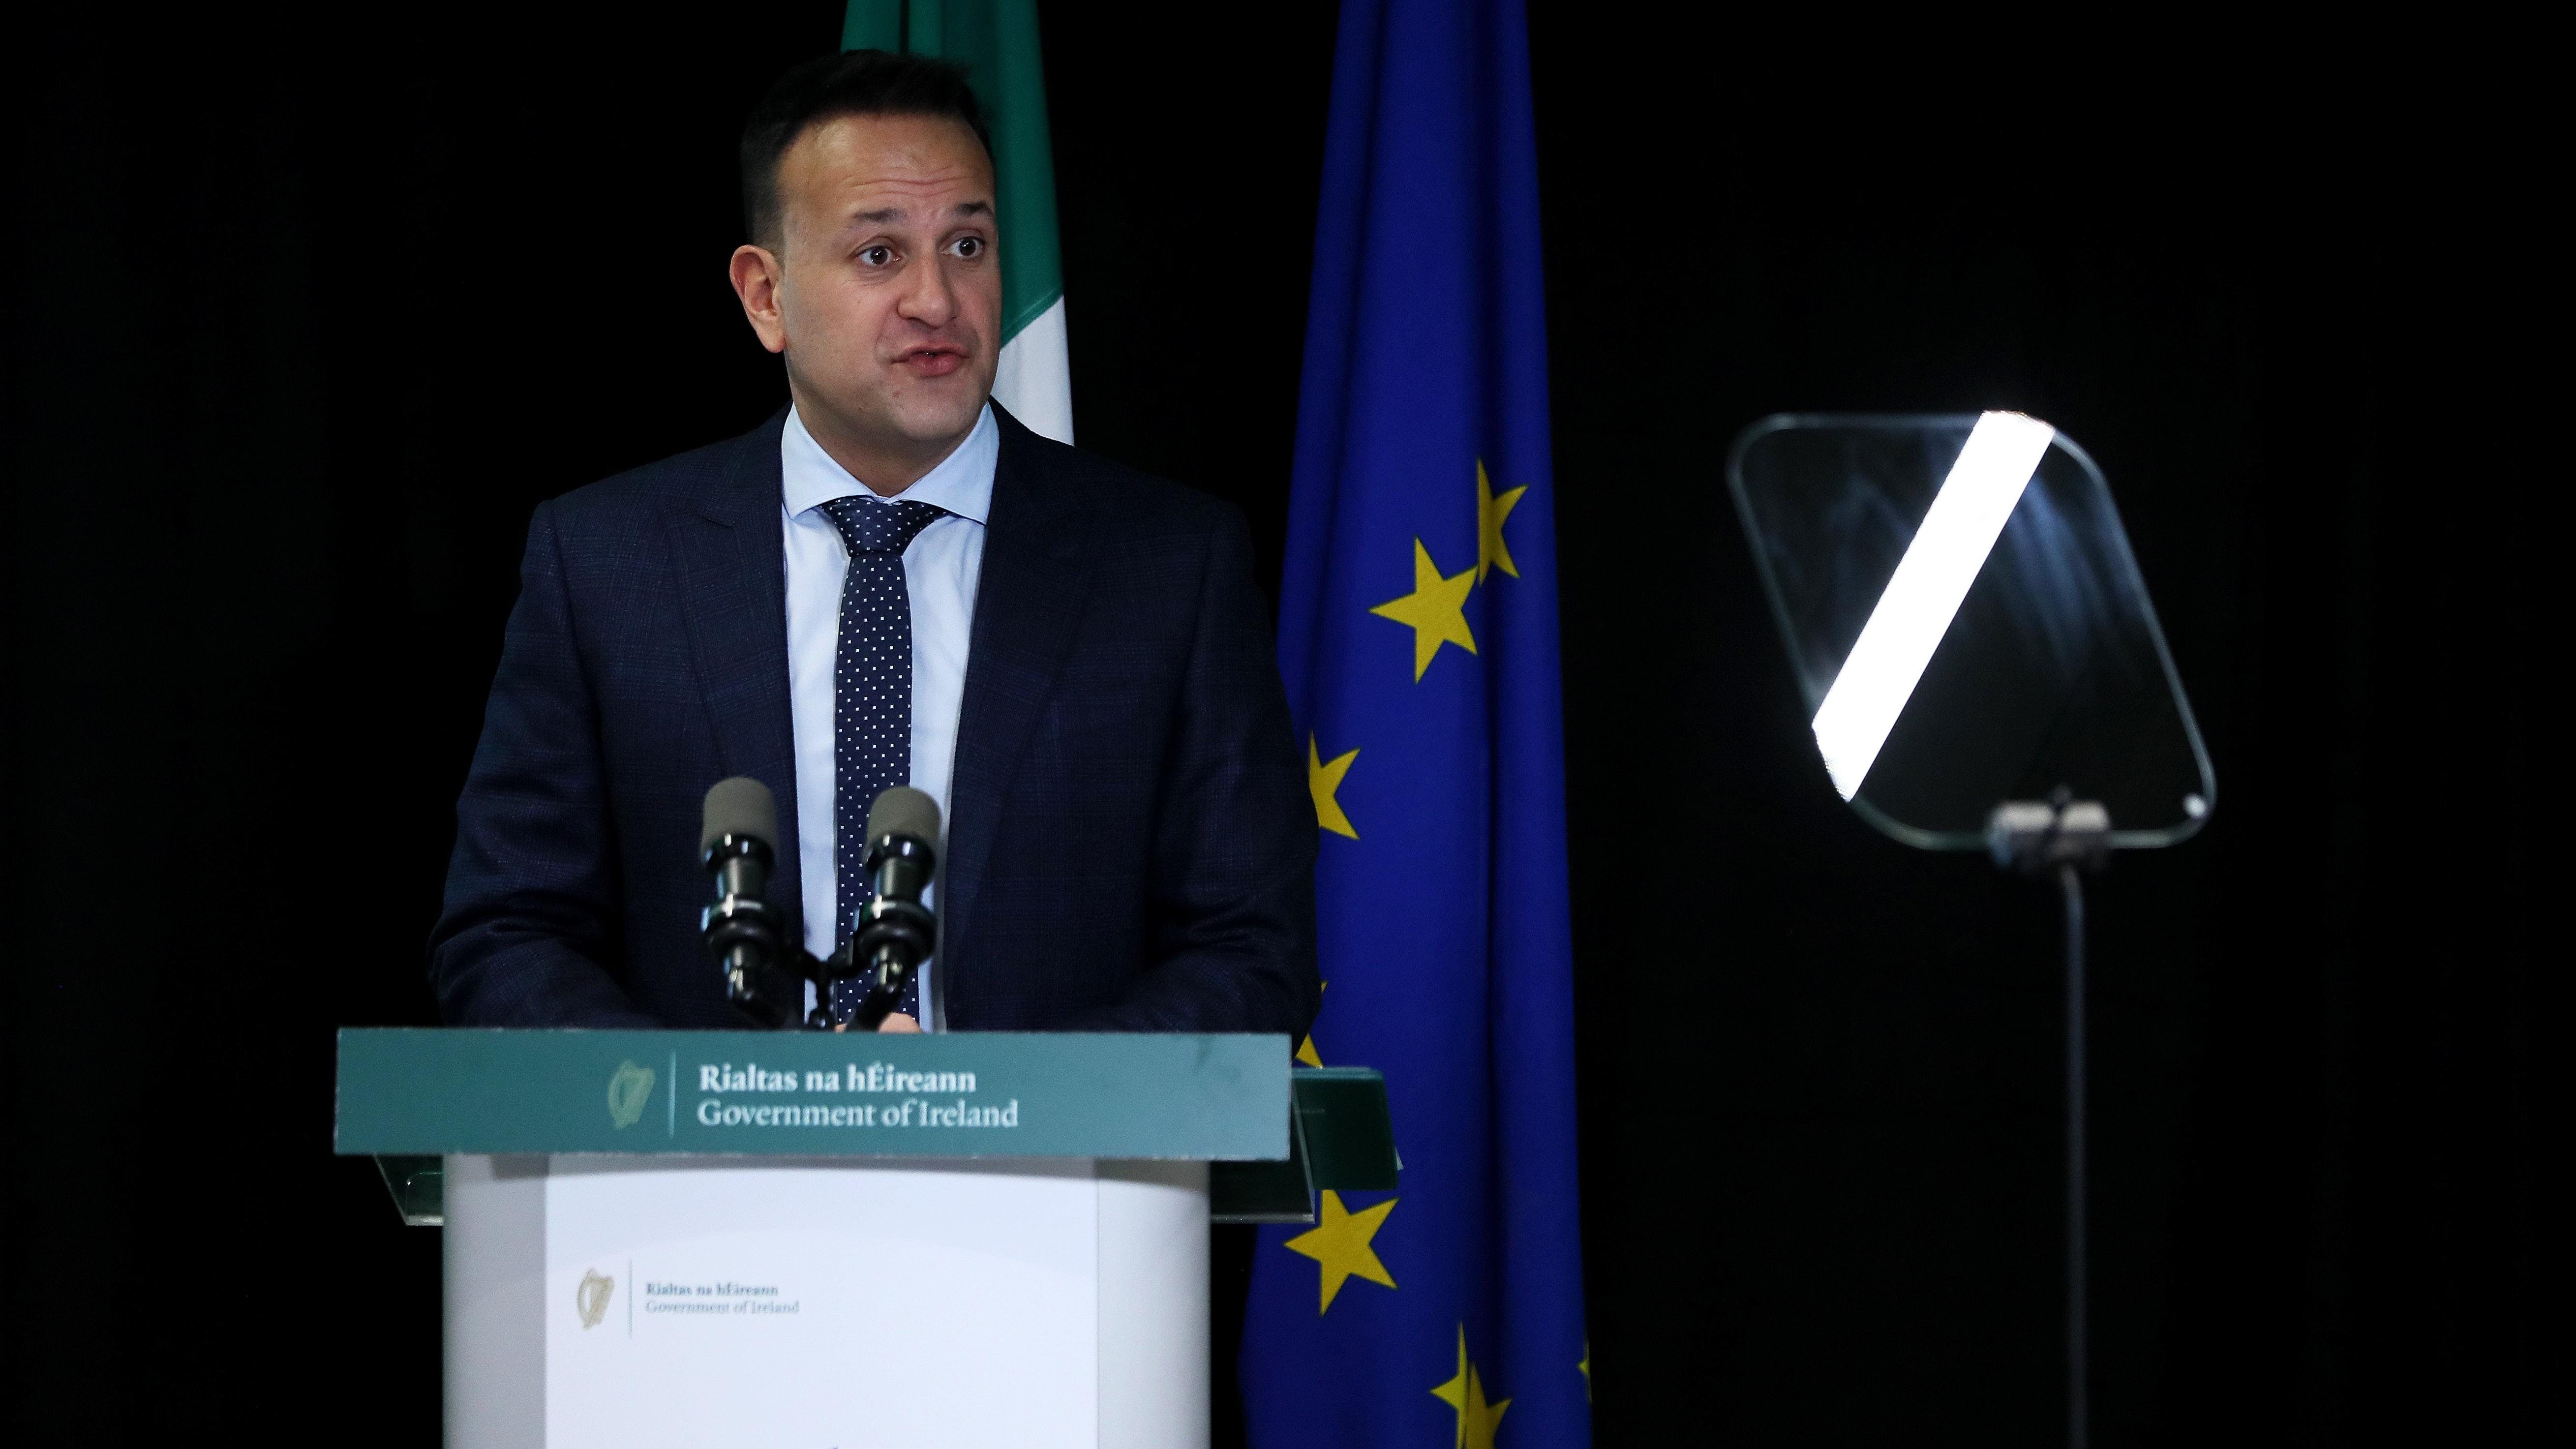 Taoiseach backs priest's anti-violence stance over Lunney attack